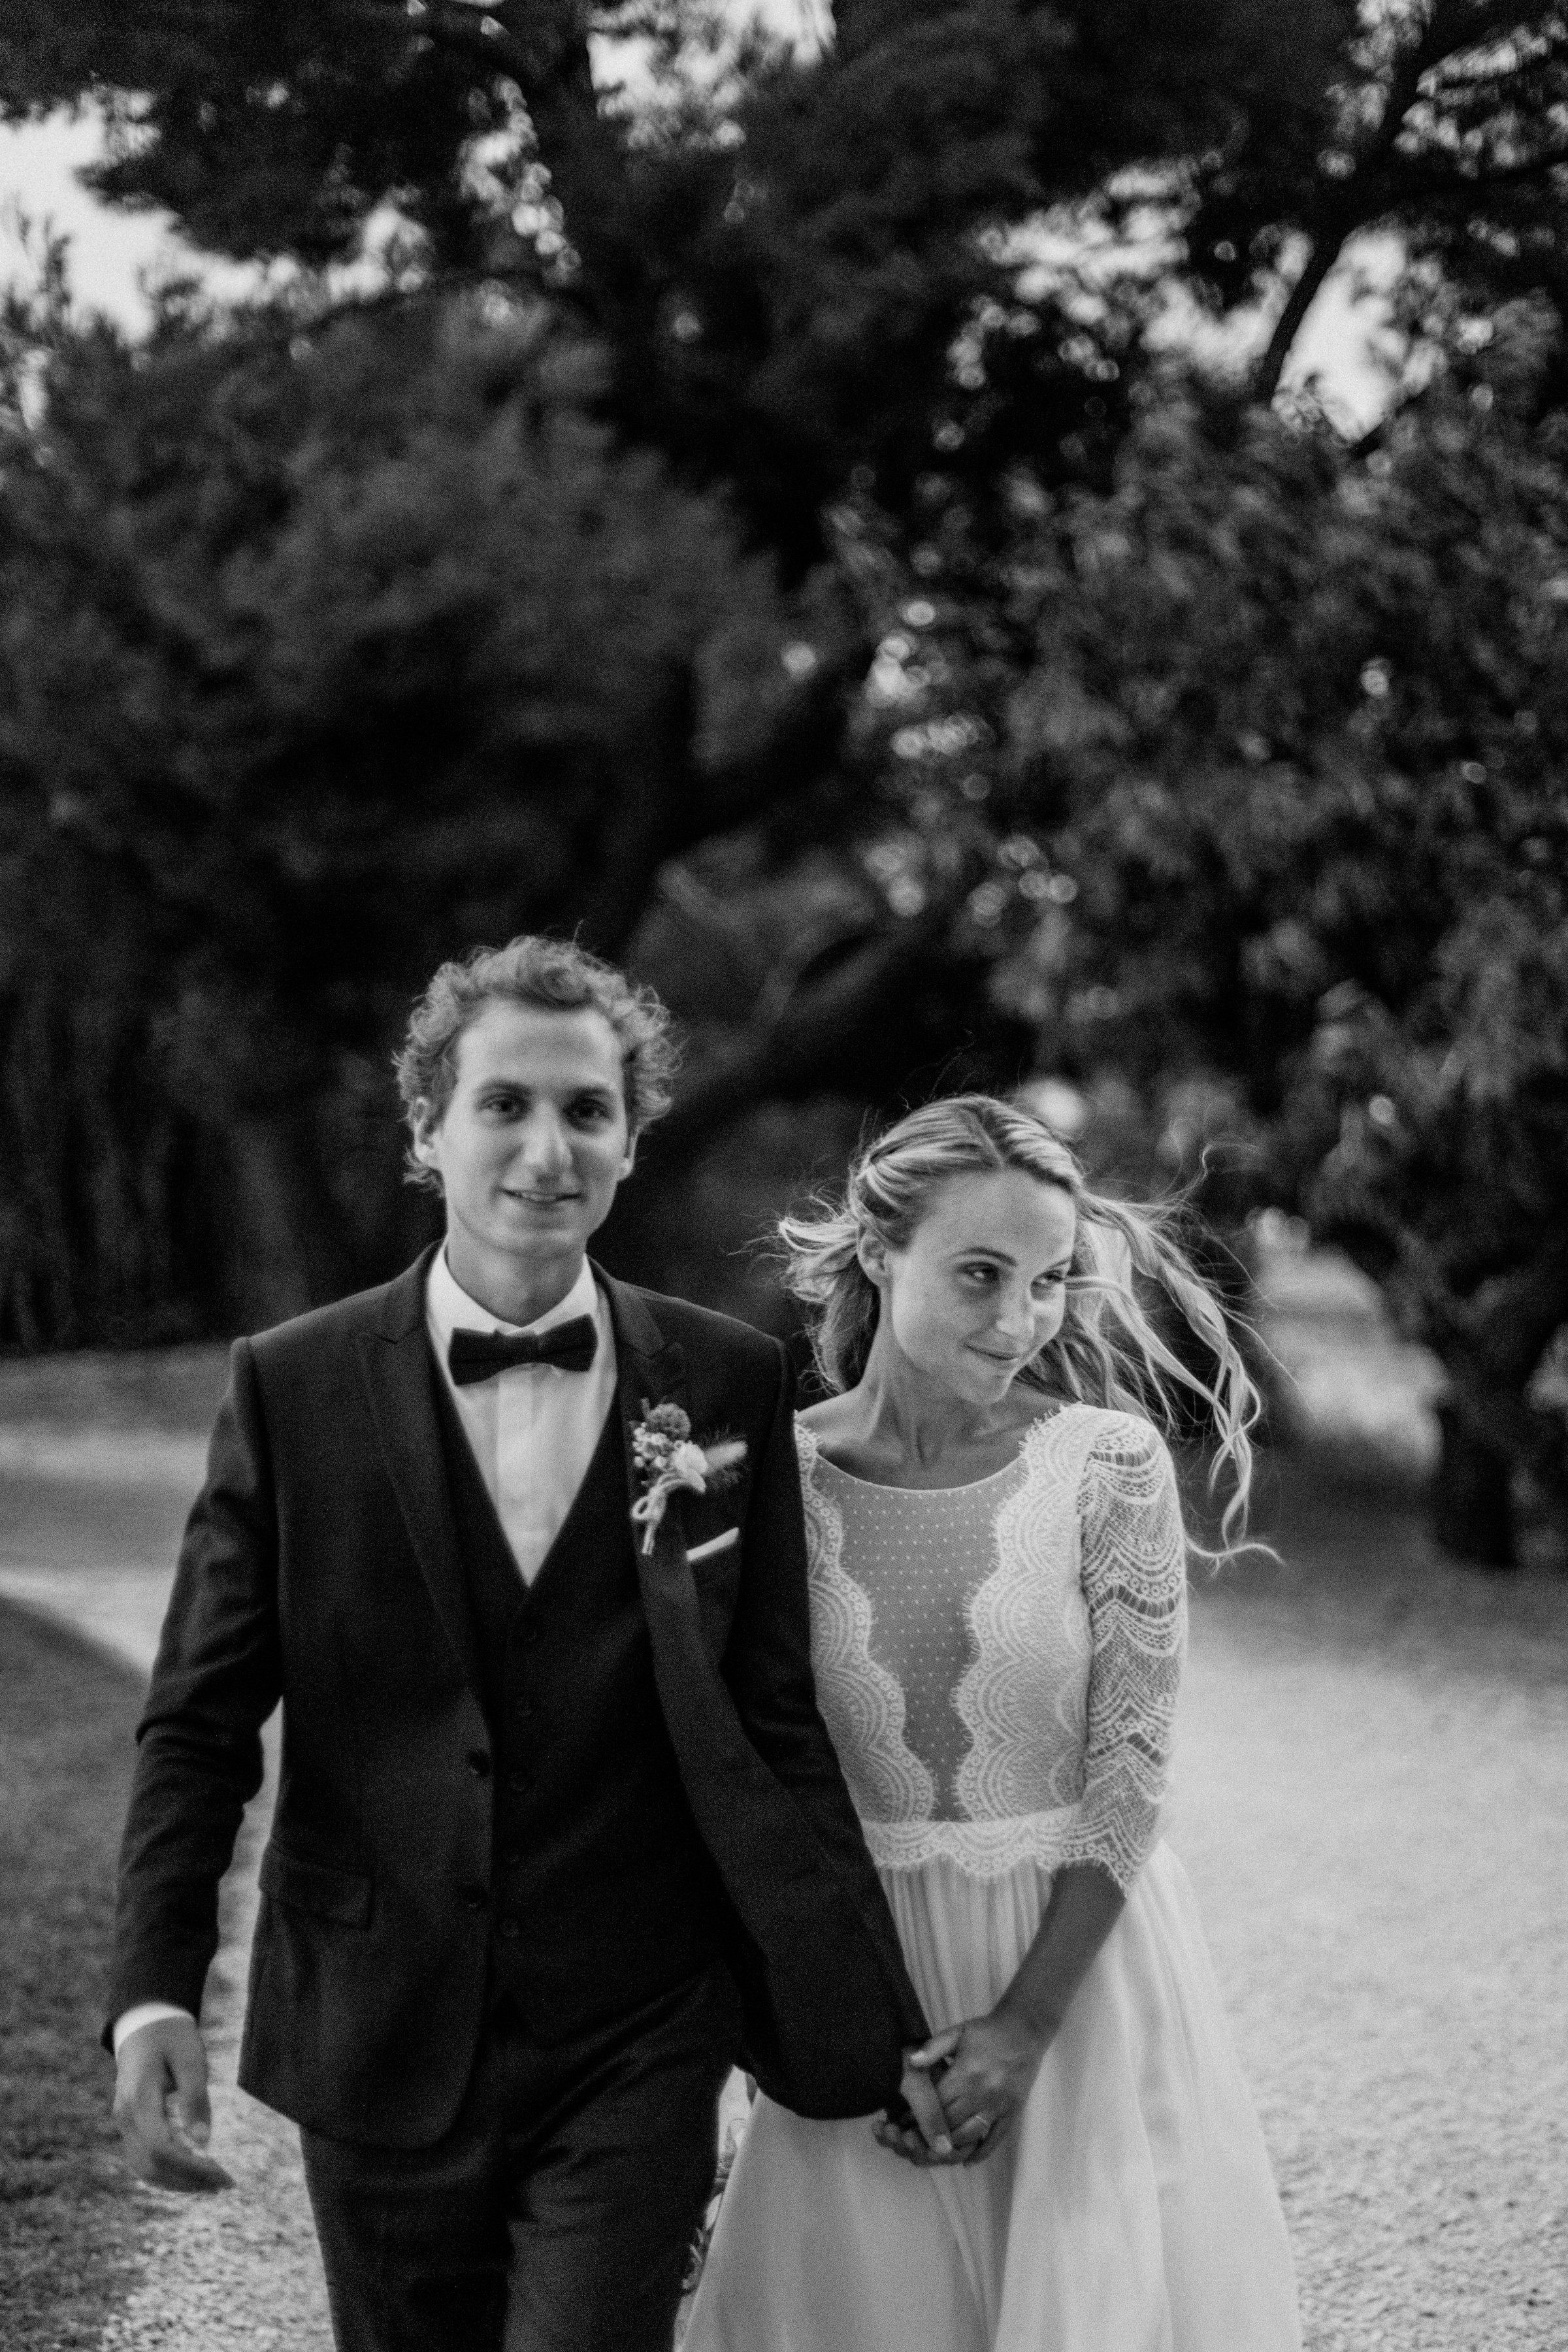 bride and groom sweet moment walking together- photo by Amandine Ropars, france